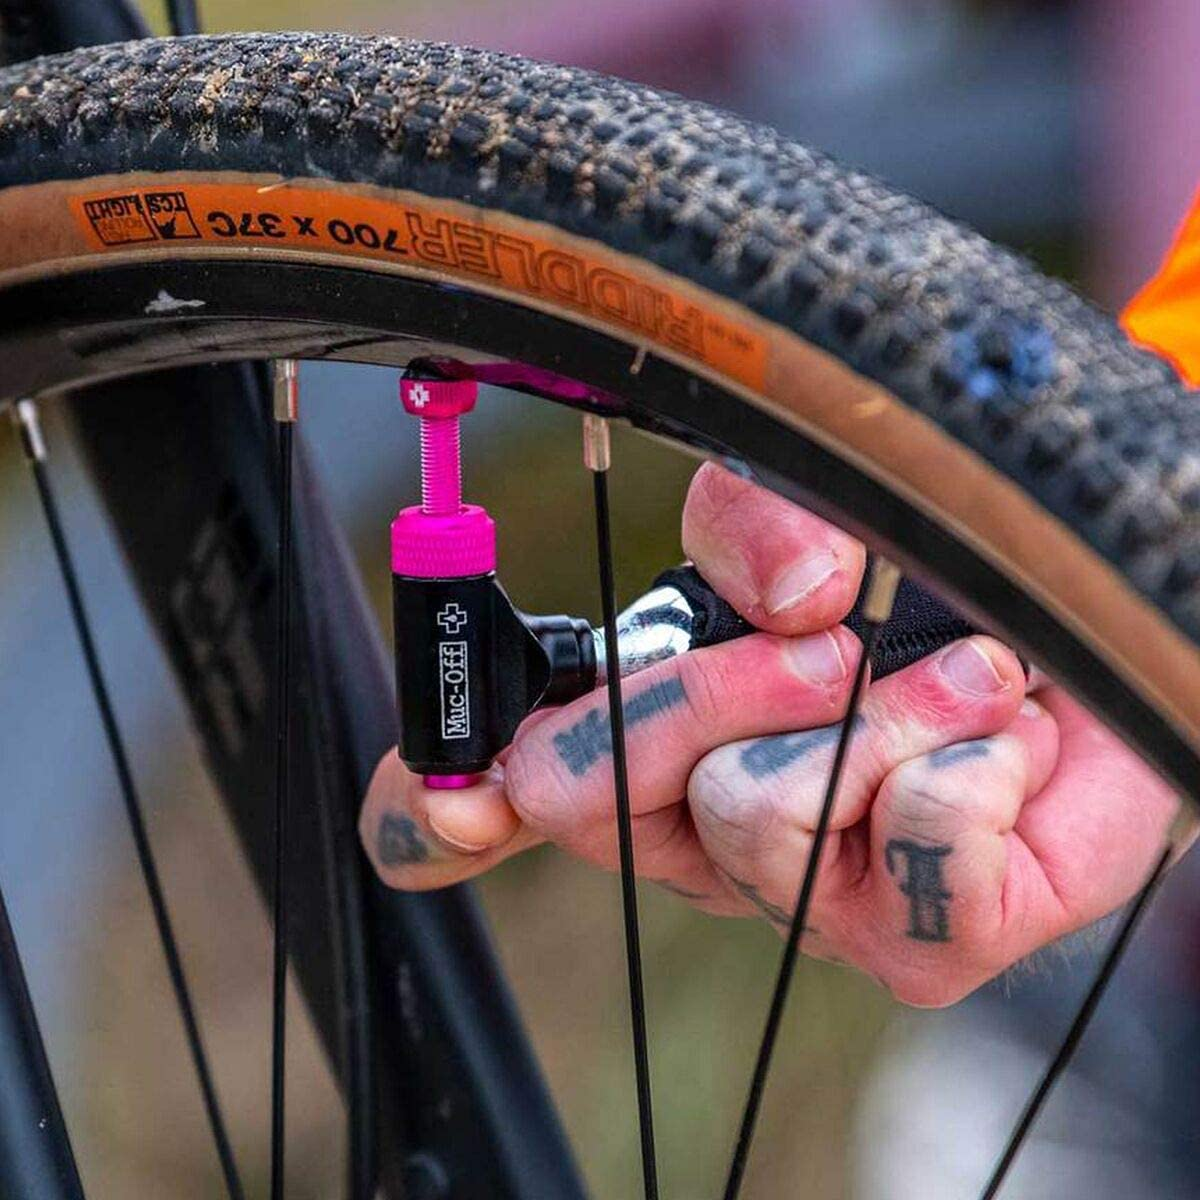 Muc-Off Tubless Tyre Repair Kit with inflator